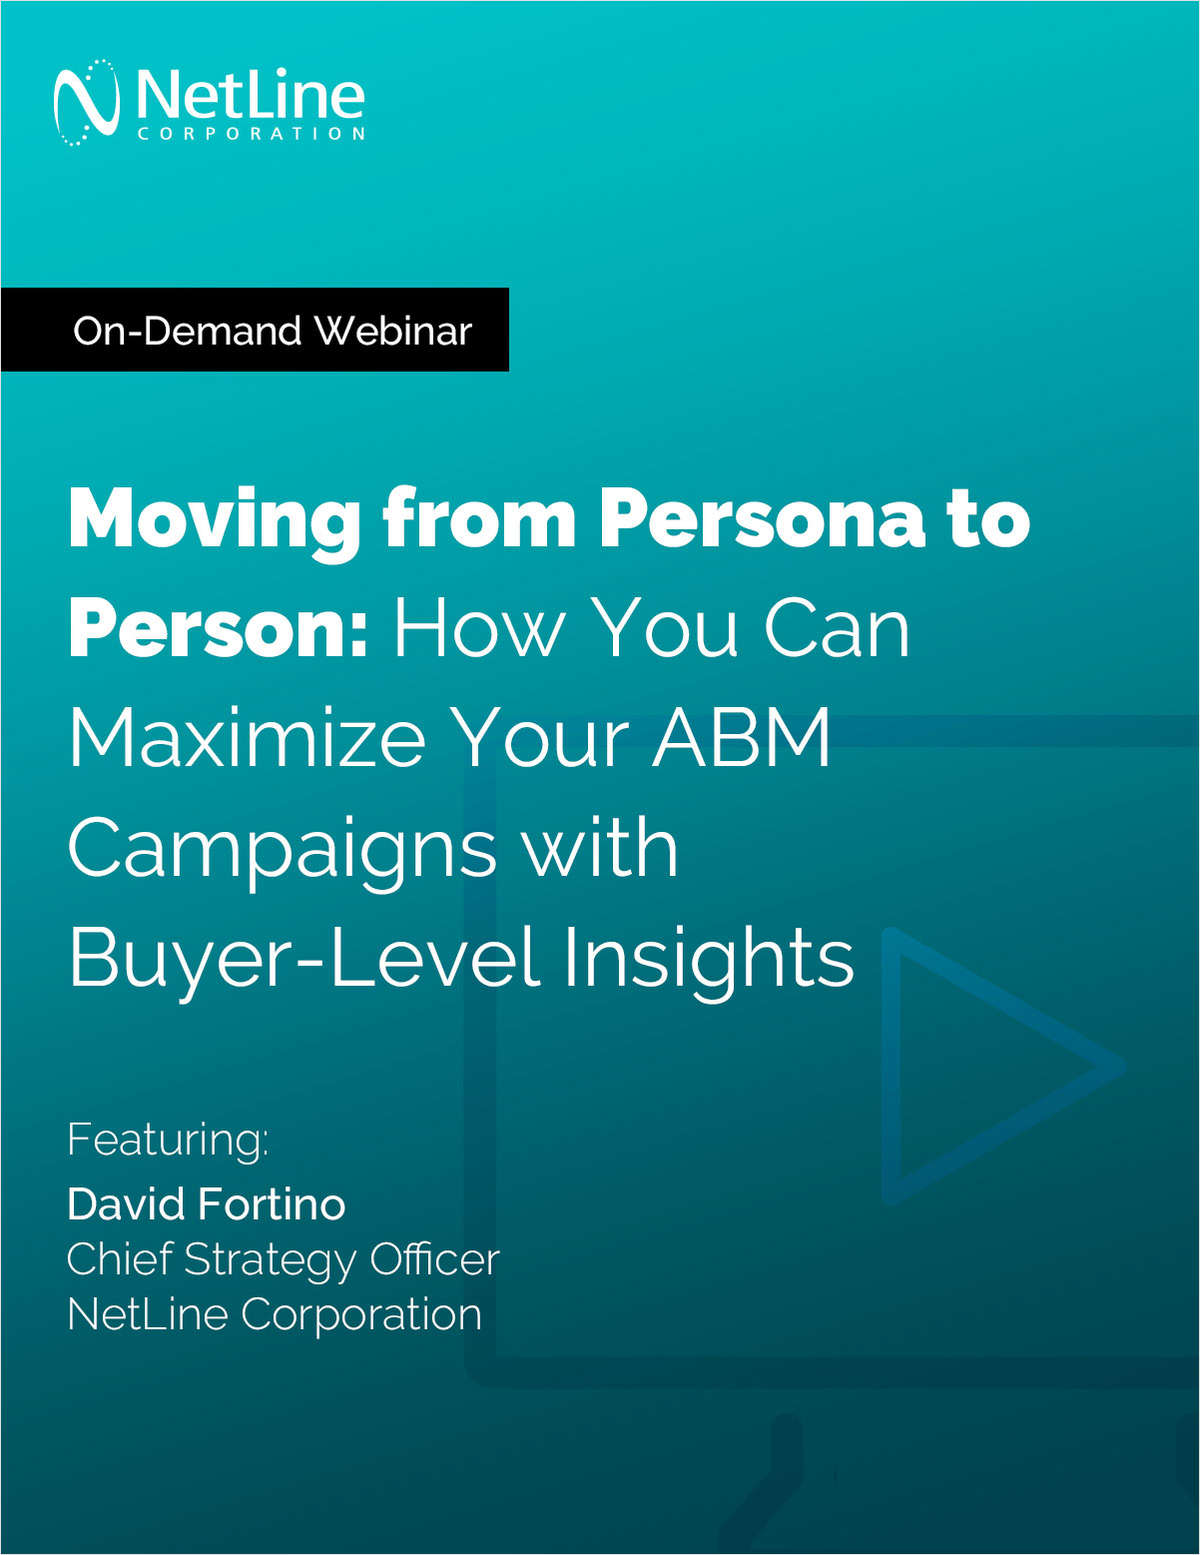 Moving from Persona to Person: How You Can Maximize Your ABM Campaigns with Buyer-Level Insights